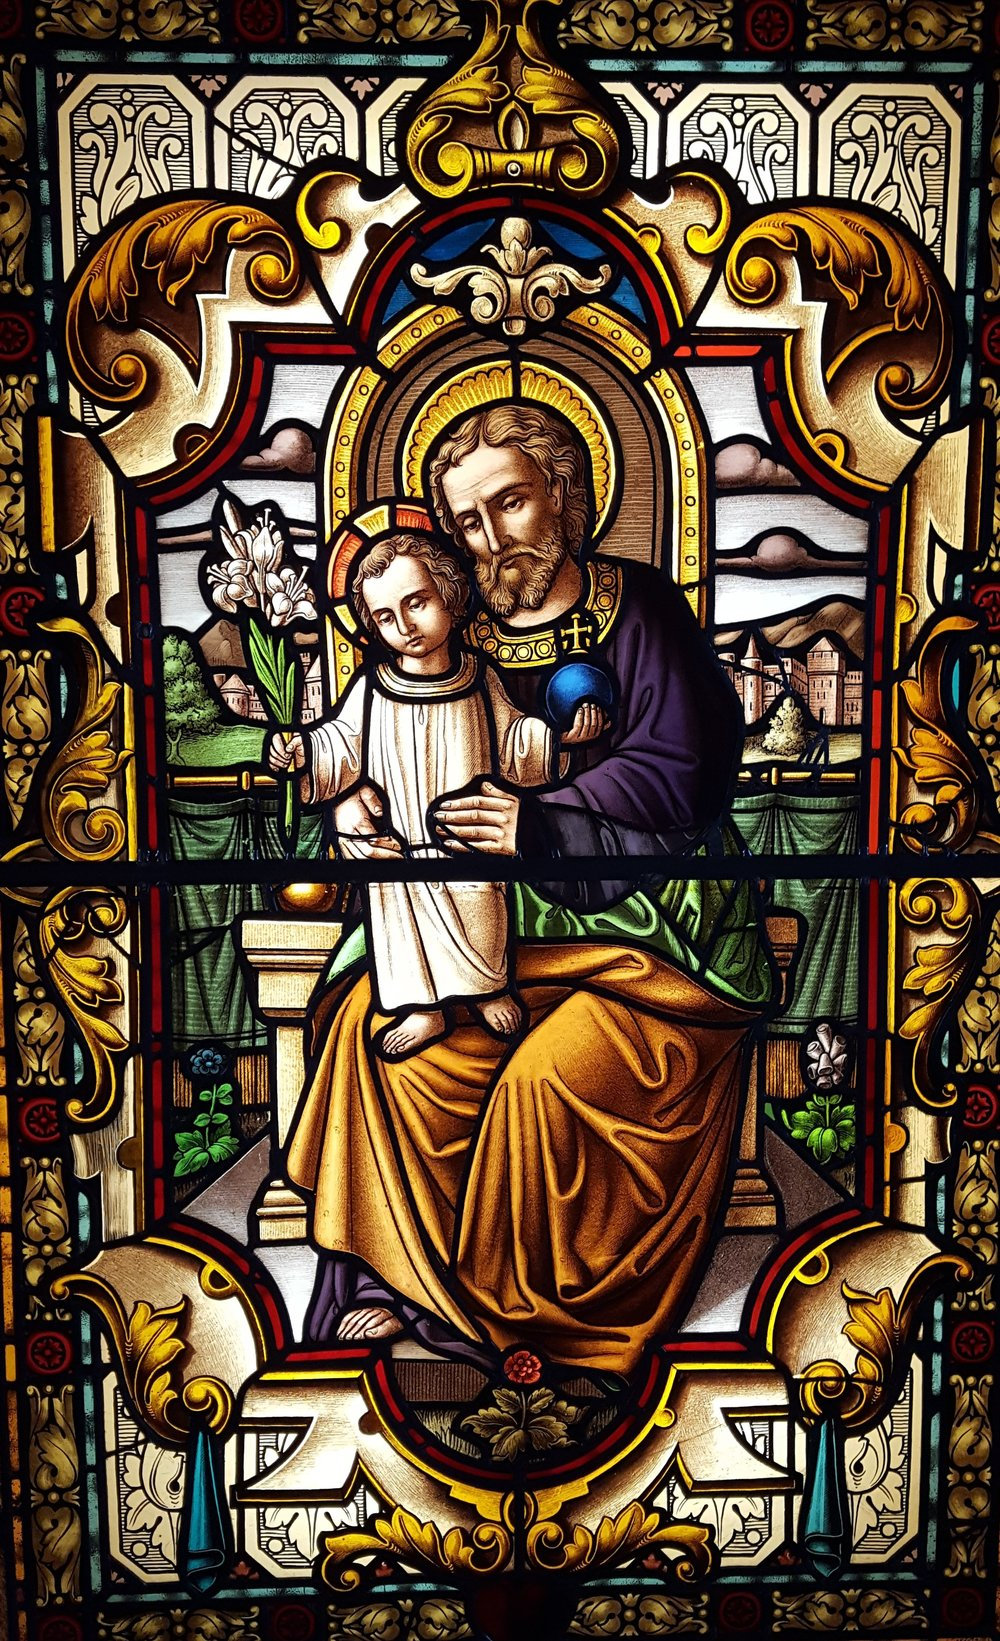 St. Joseph's Window